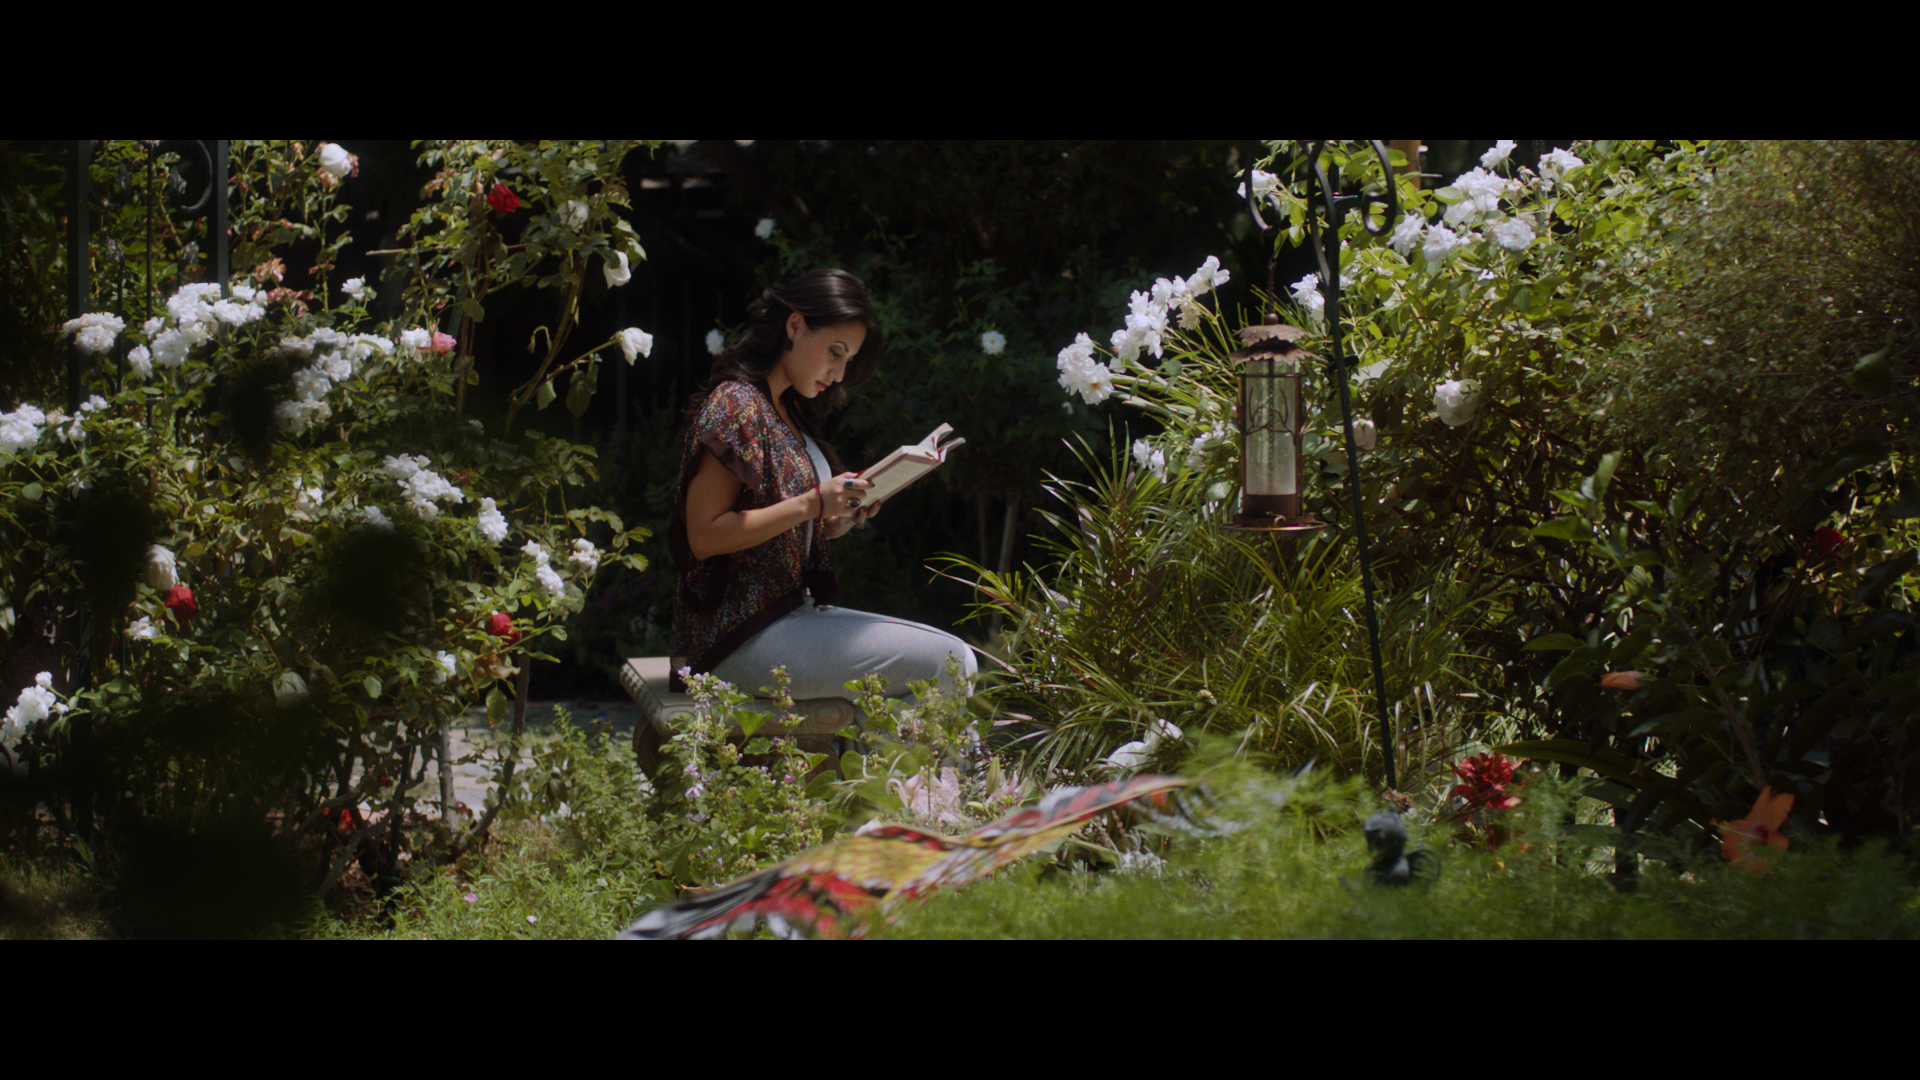 BP Shahrzad reading in garden still photo